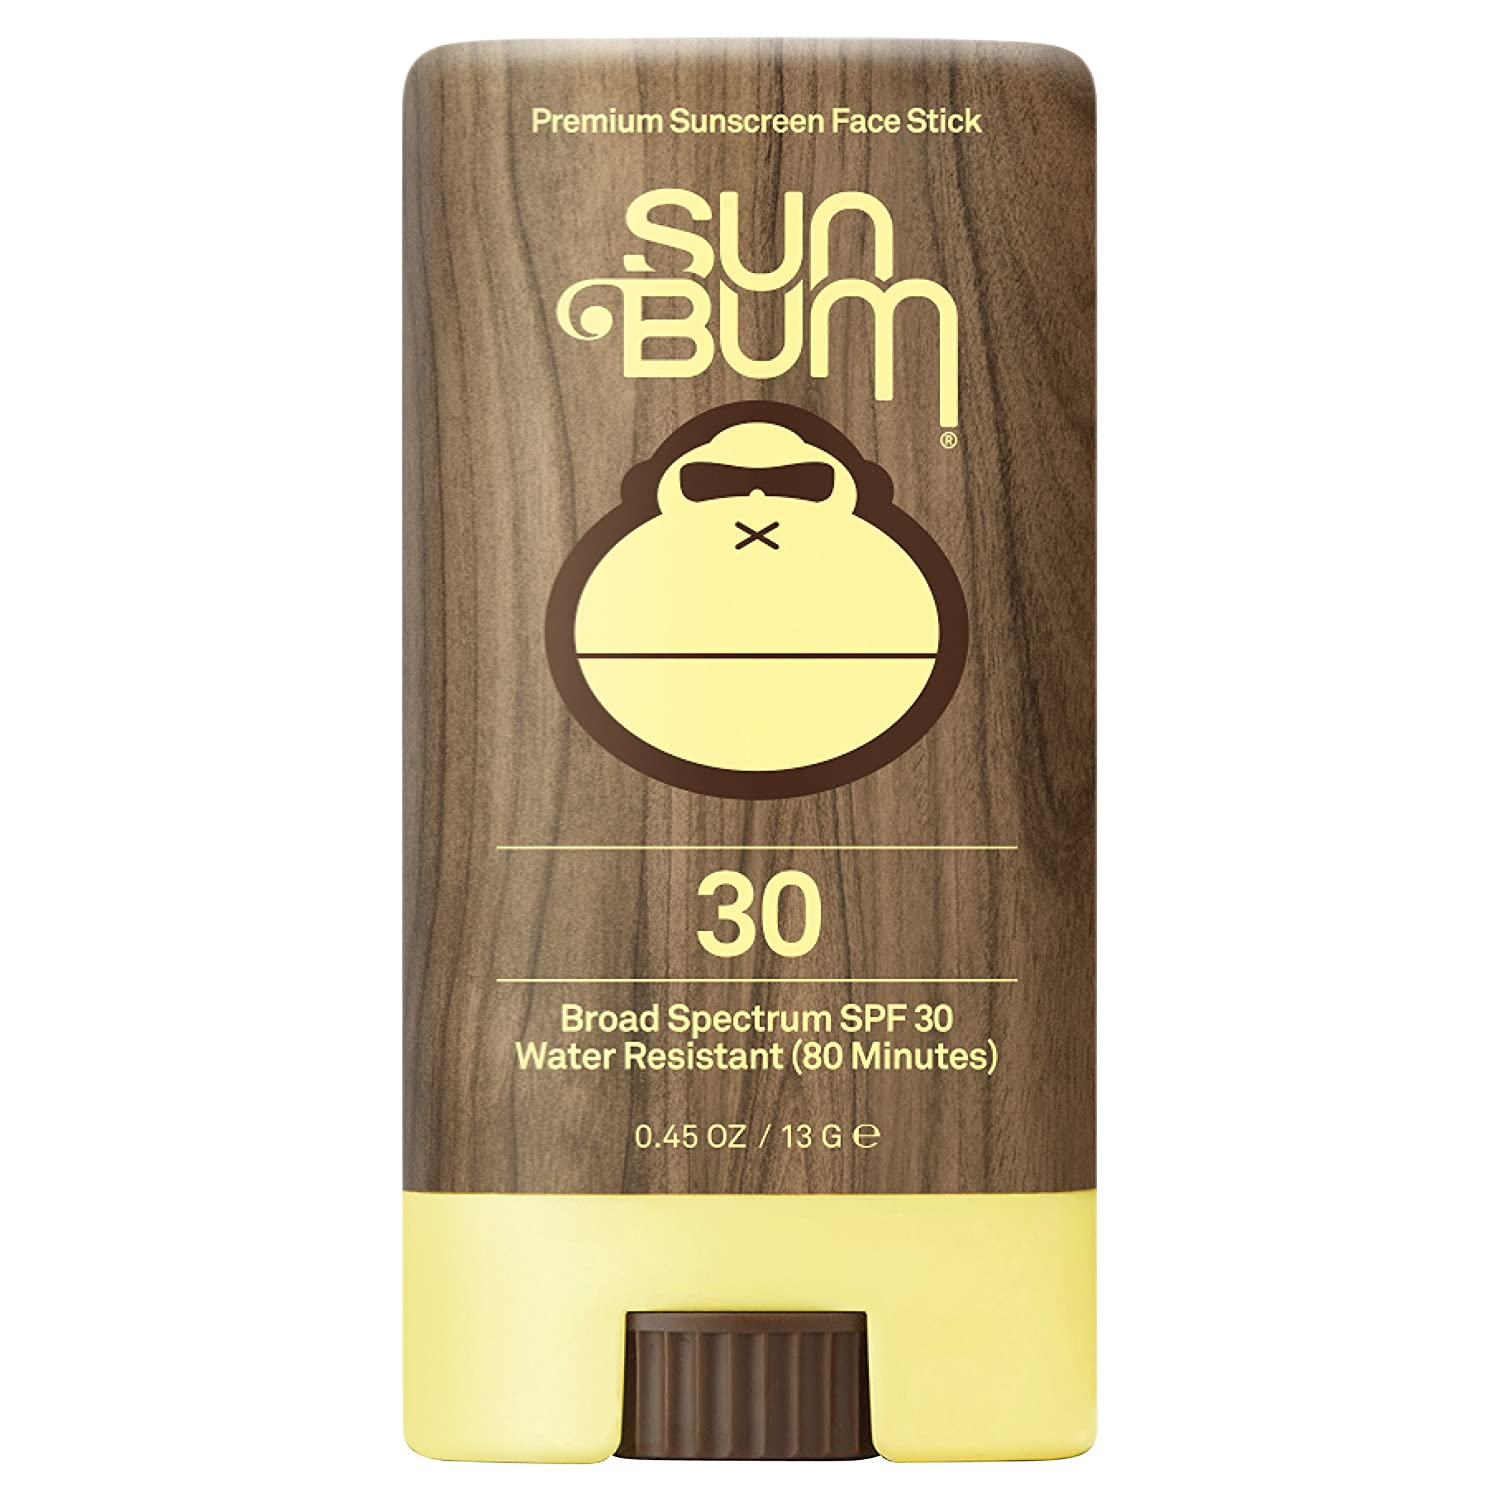 Sun Bum Premium Sunscreen Face Stick, SPF 30, 0.45 oz. Stick, 1 Count, Broad Spectrum UVA/UVB Protection, Paraben Free, Gluten Free, Oil Free 20-45030